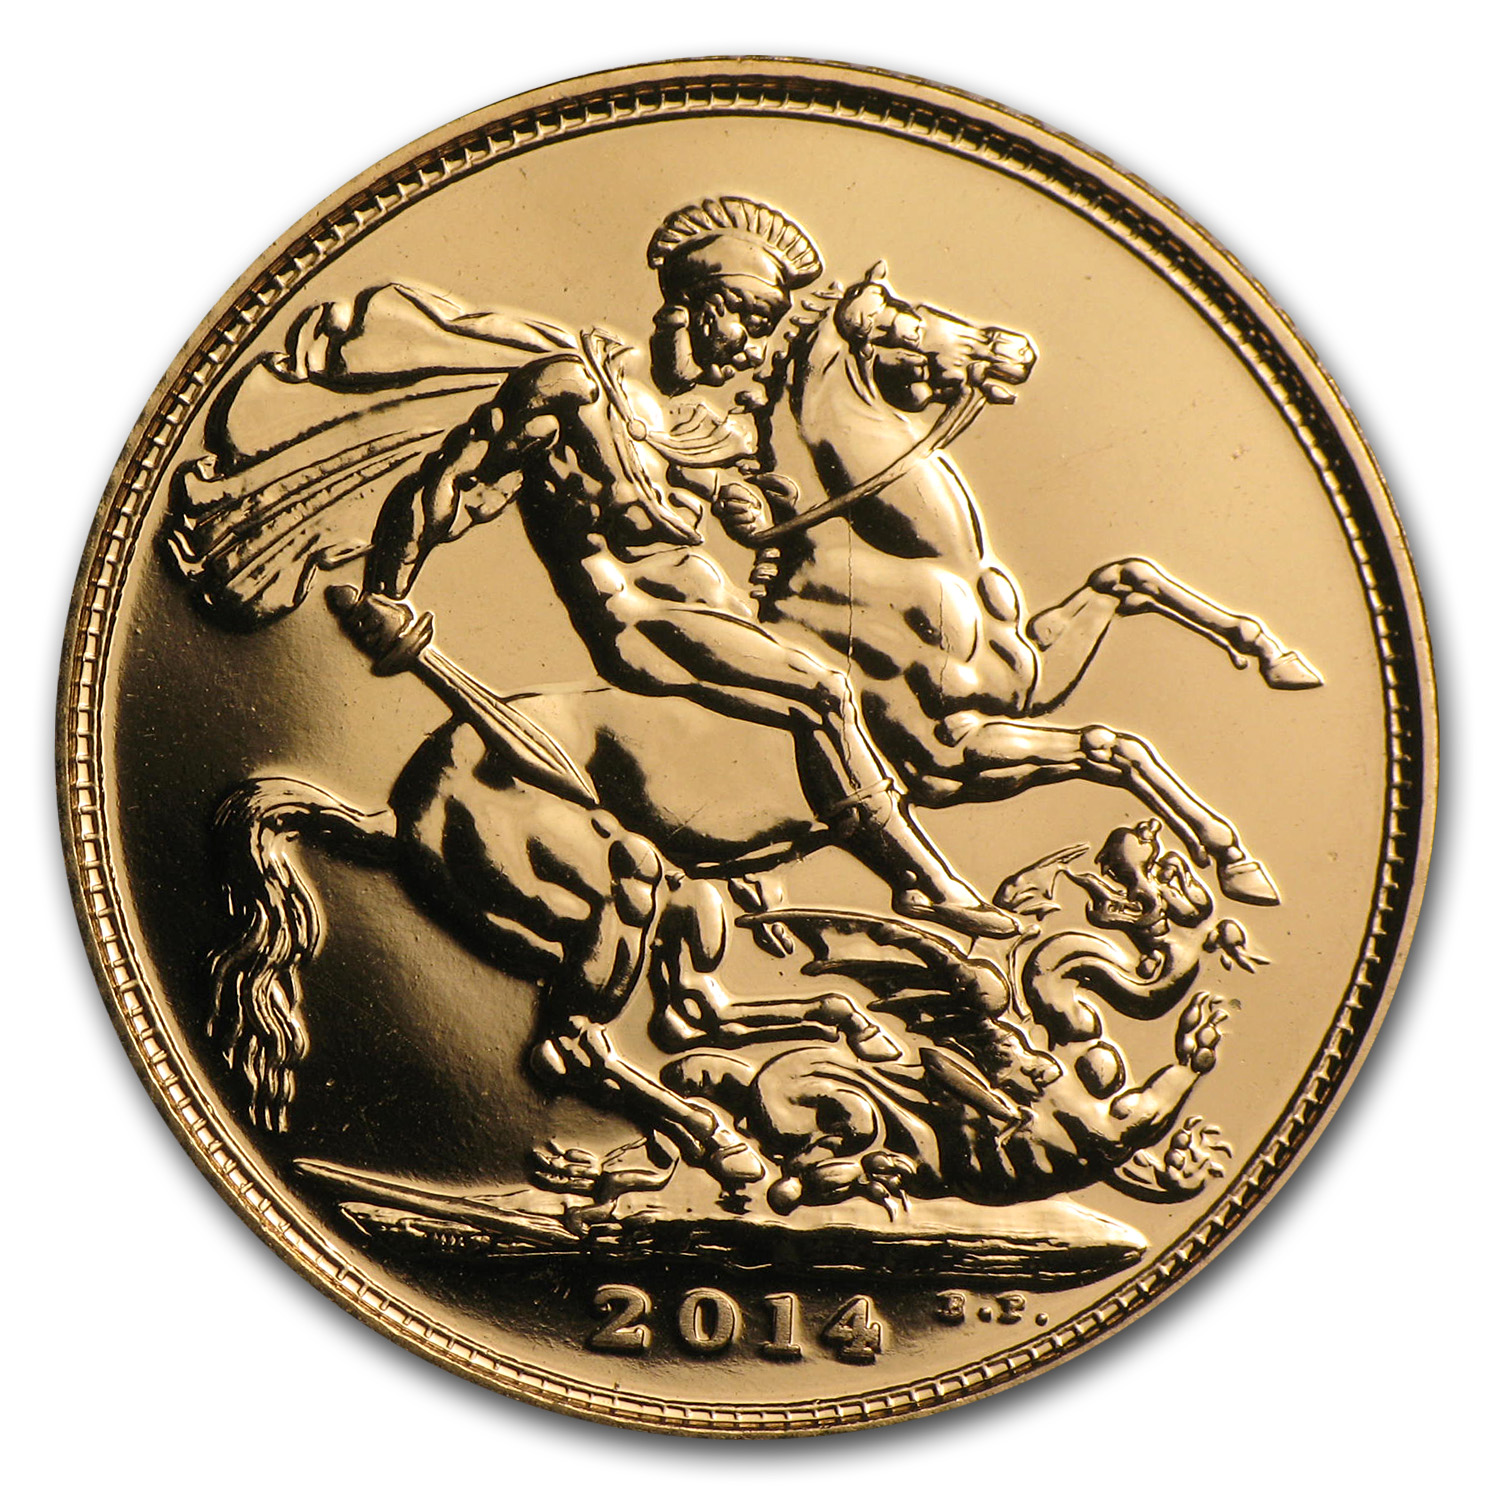 Great Britain 2014 Gold Sovereigns (New) AGW .2354